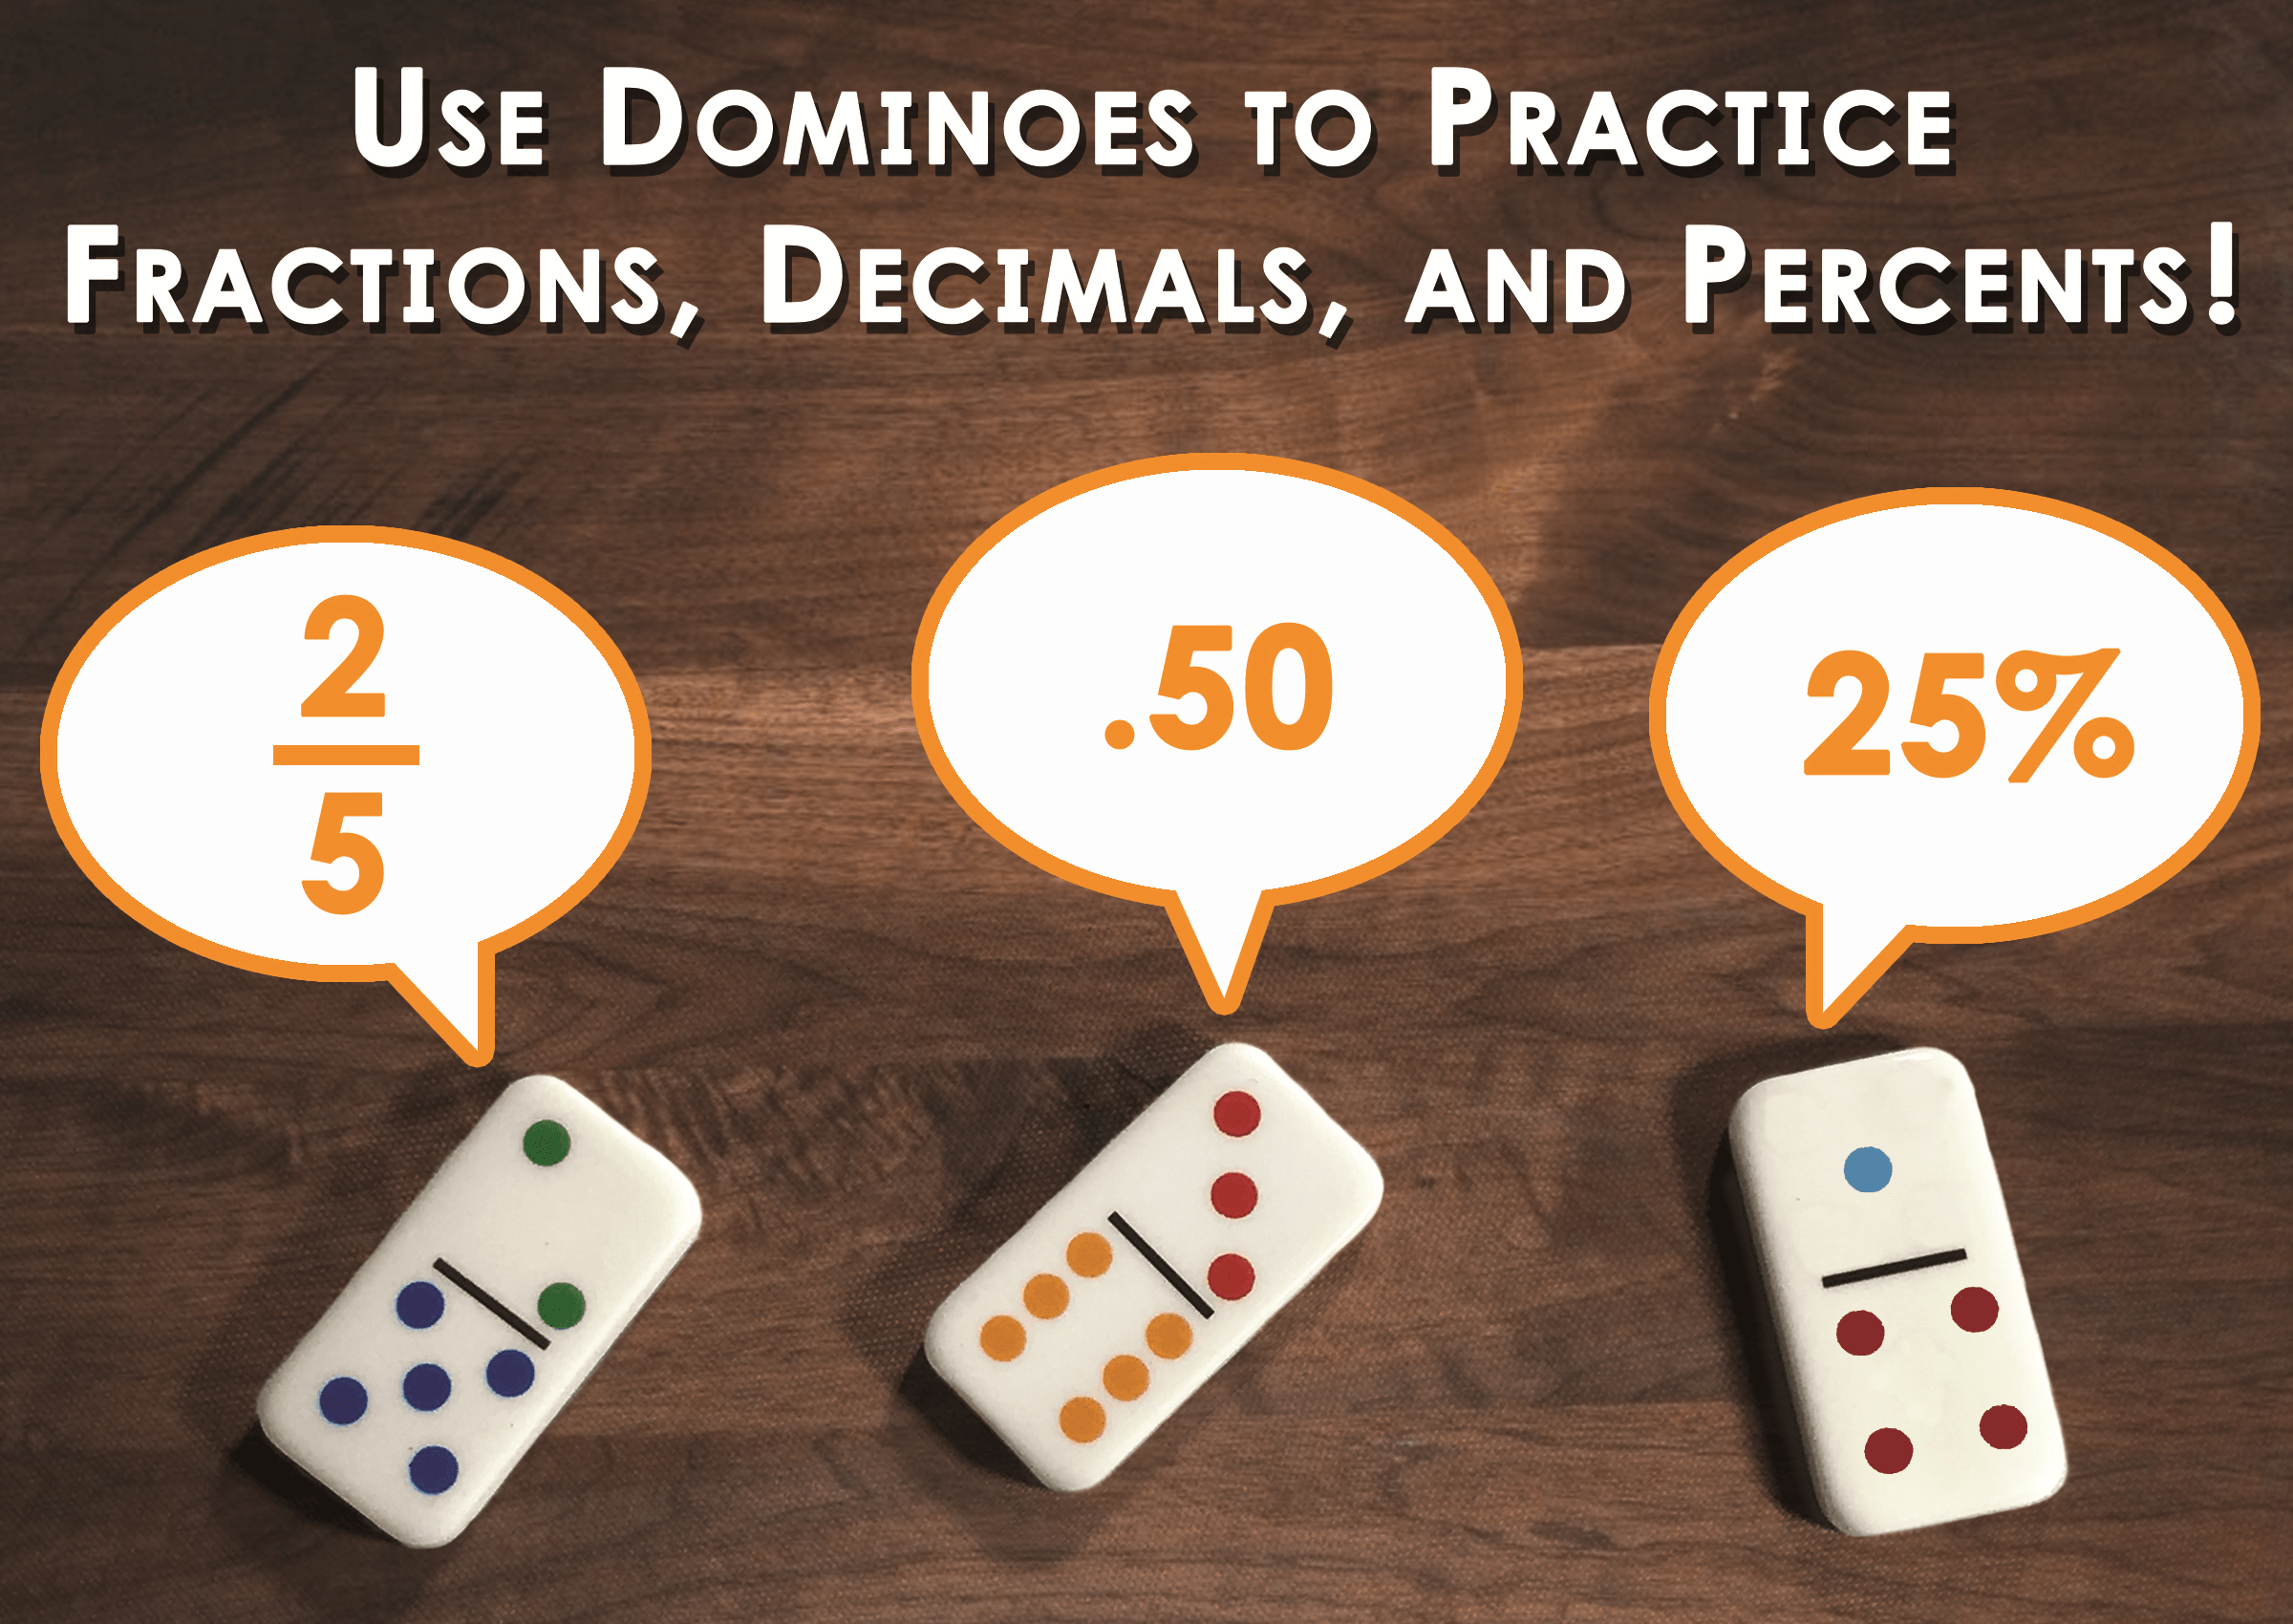 Practice Fractions, Decimals, and Percents with Dominoes!